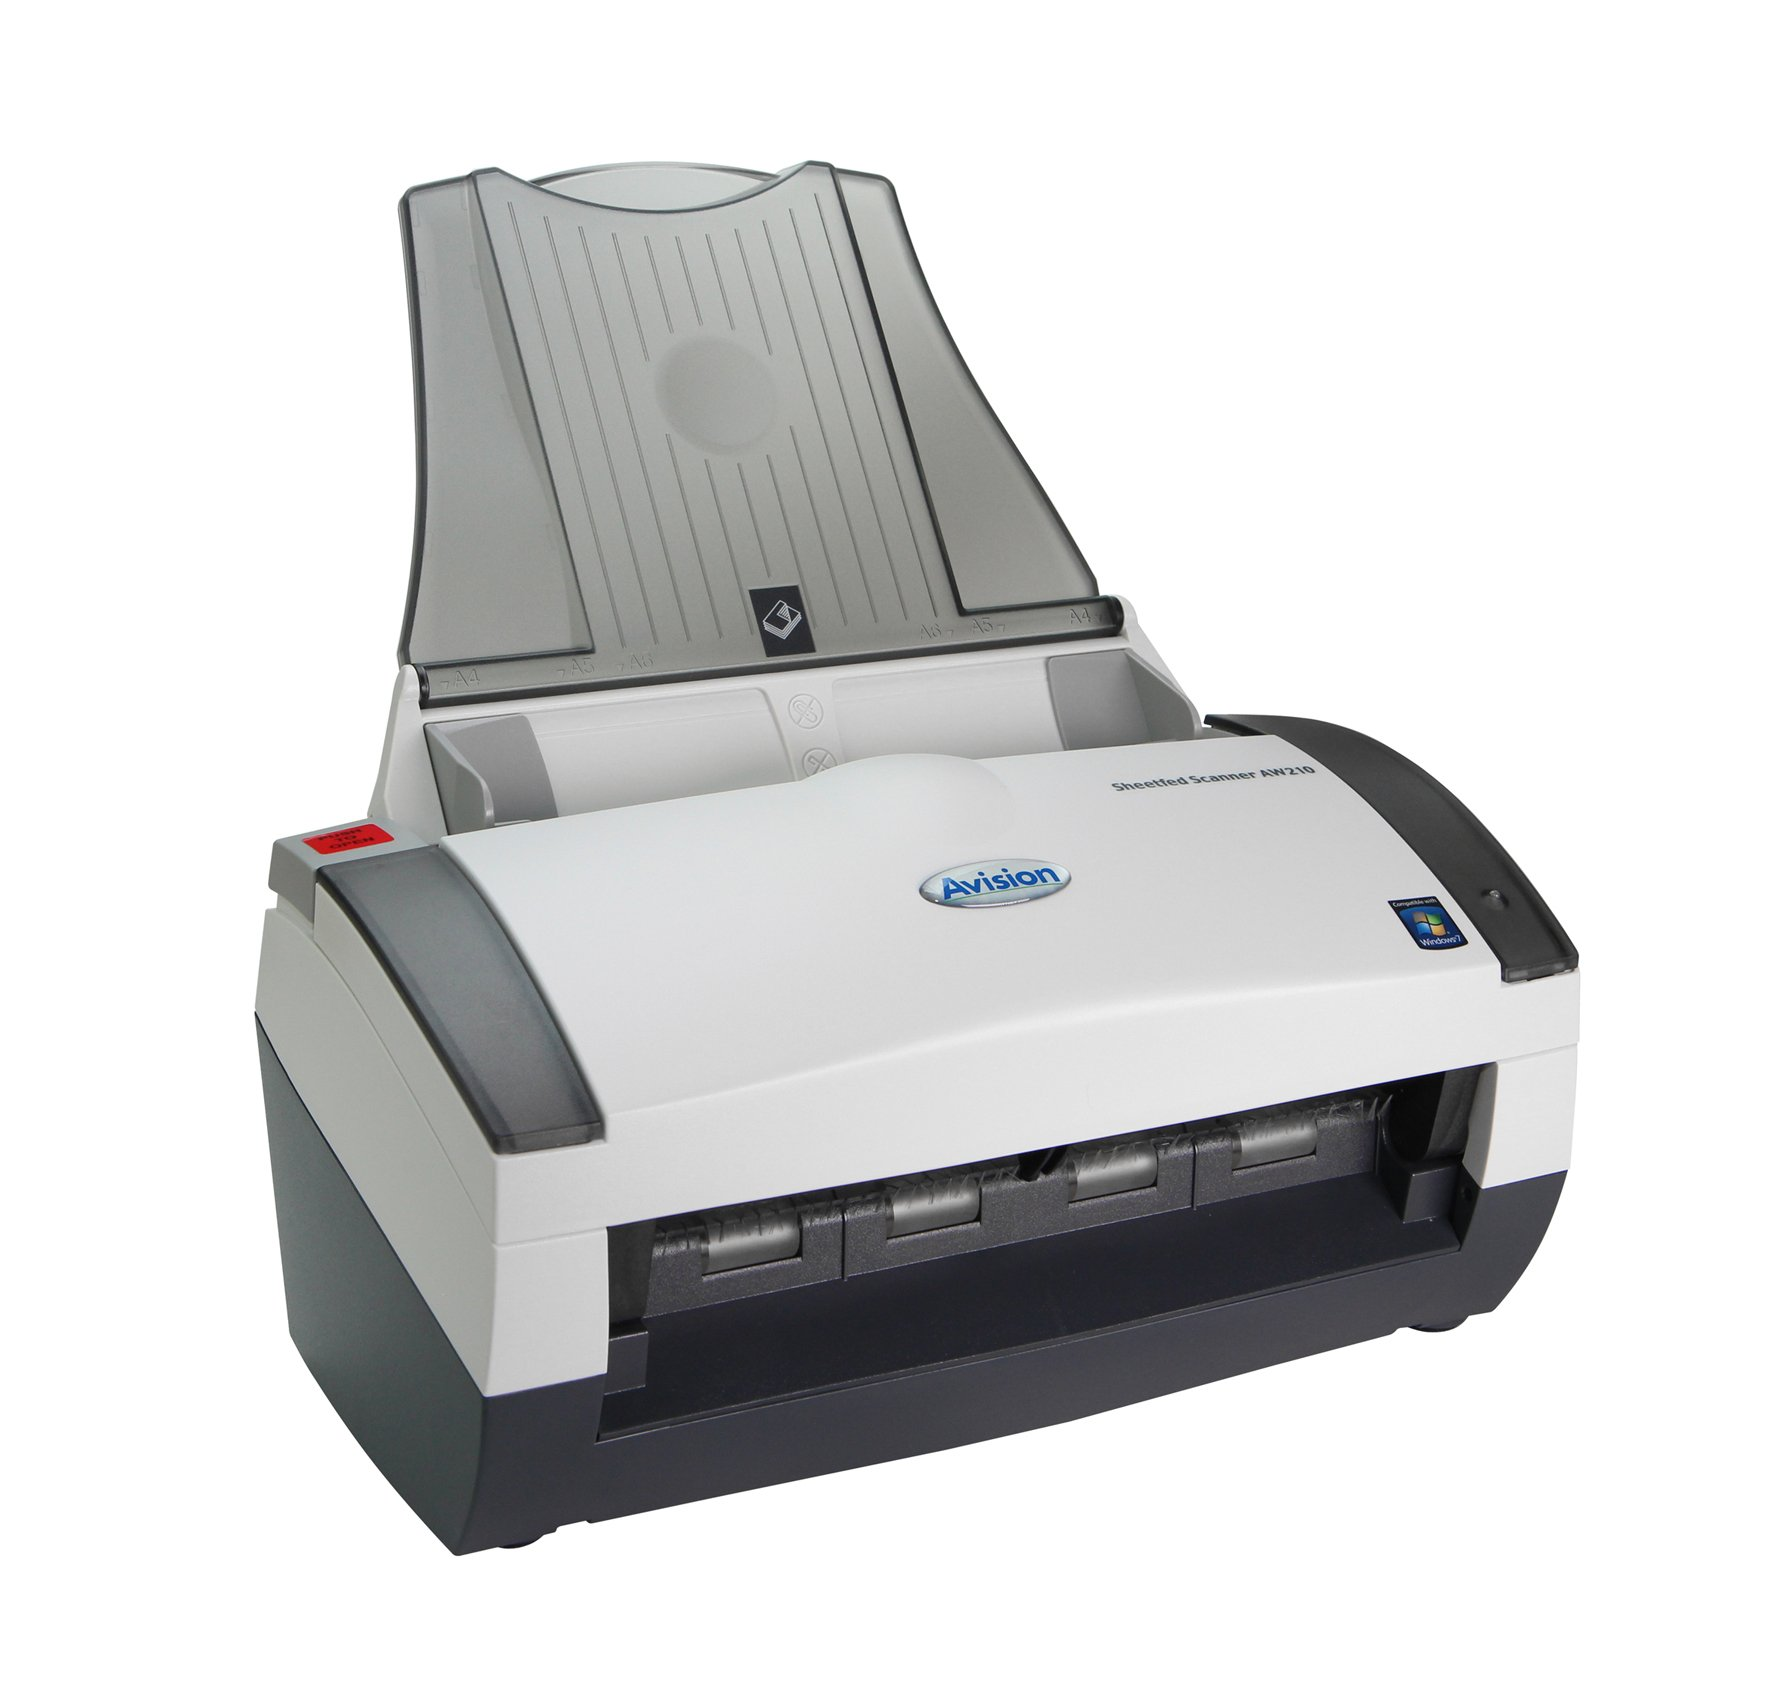 Avision AW210 Color Simplex 34ppm CCD Sheetfed Scanner 8.5'' x 14'' Best Document and Paper Handling